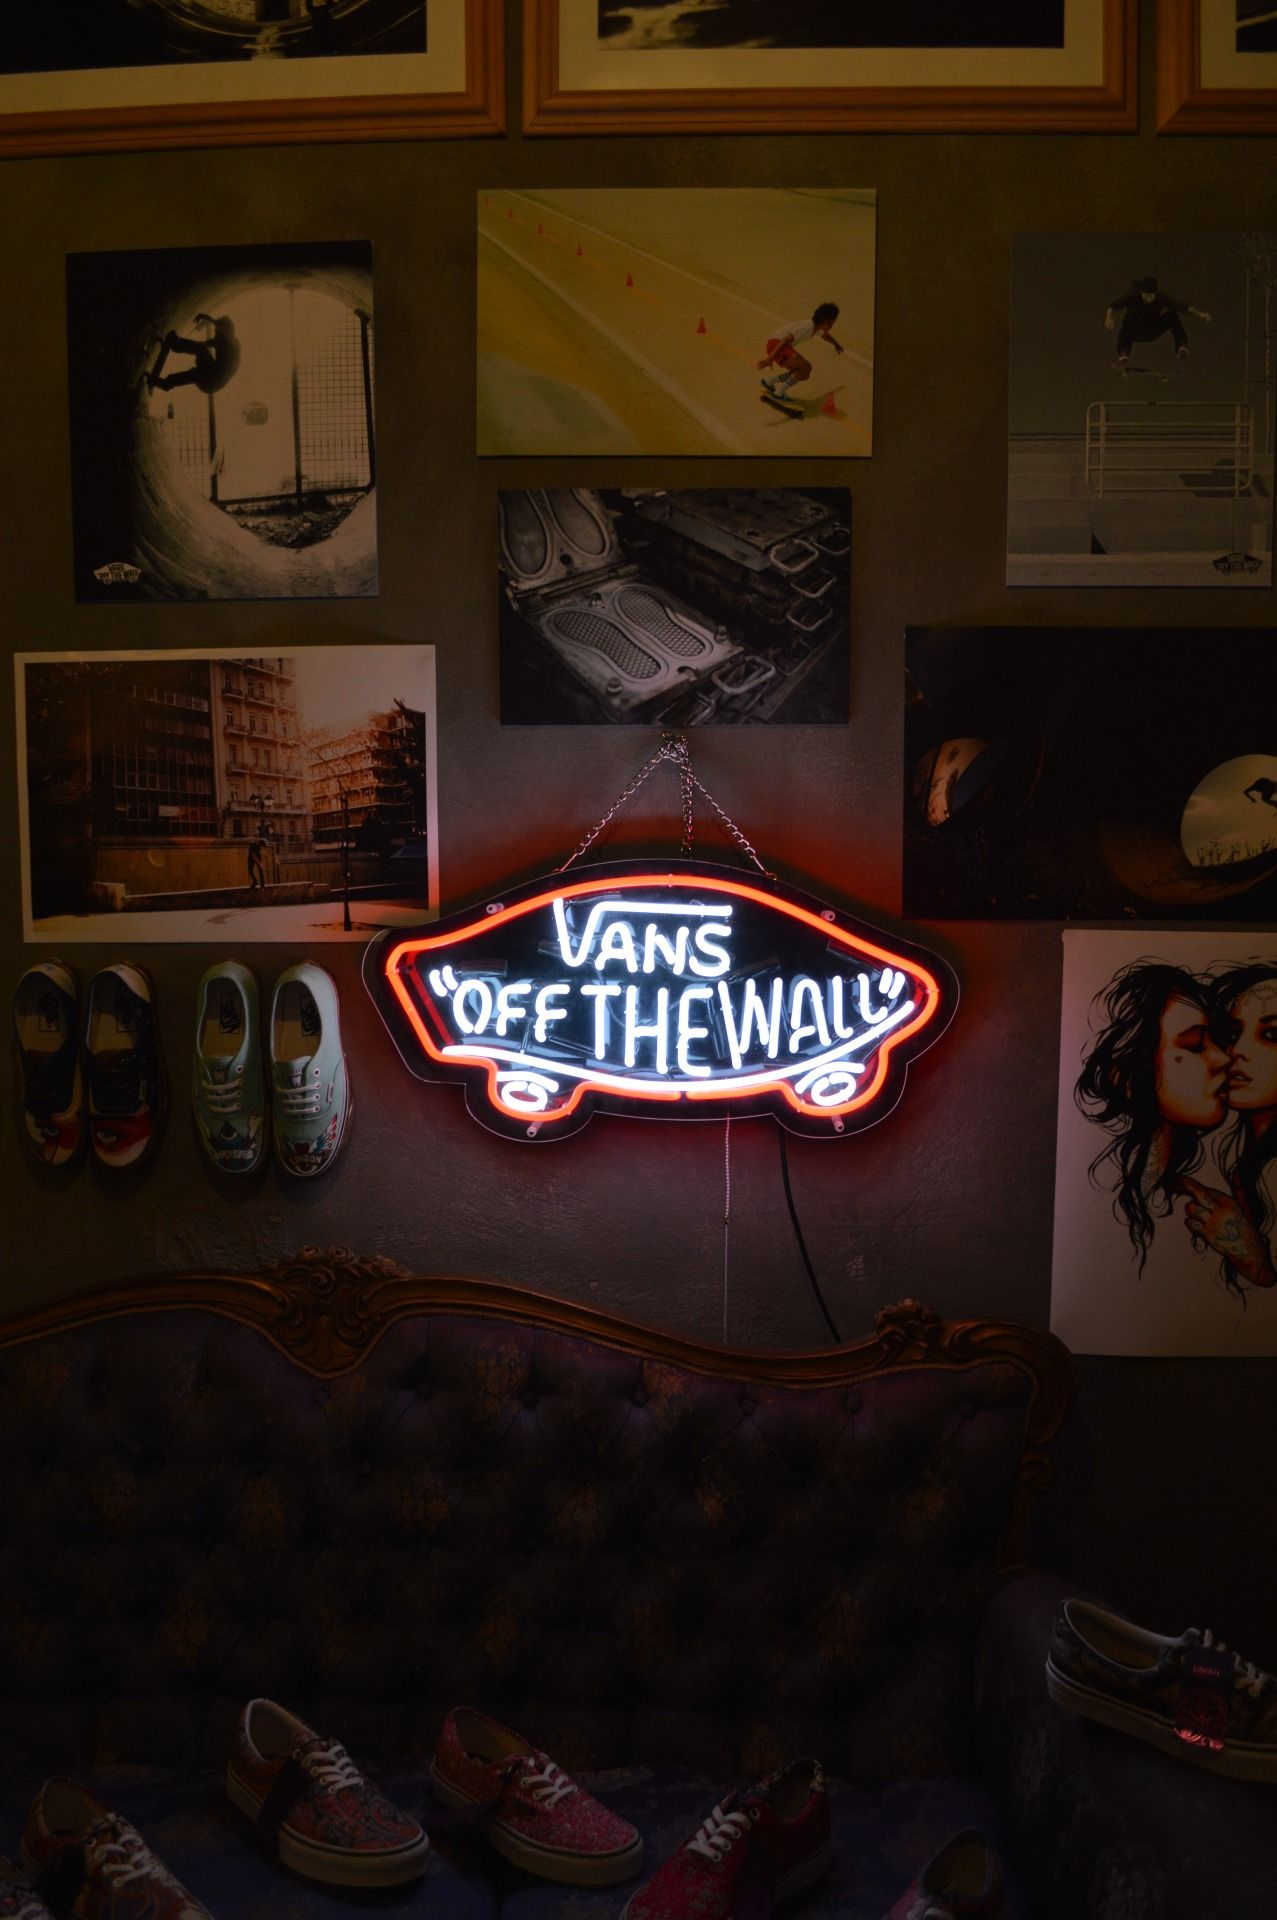 Pin By Tyler Baker On Vans Neon Signs Vans Off The Wall Neon